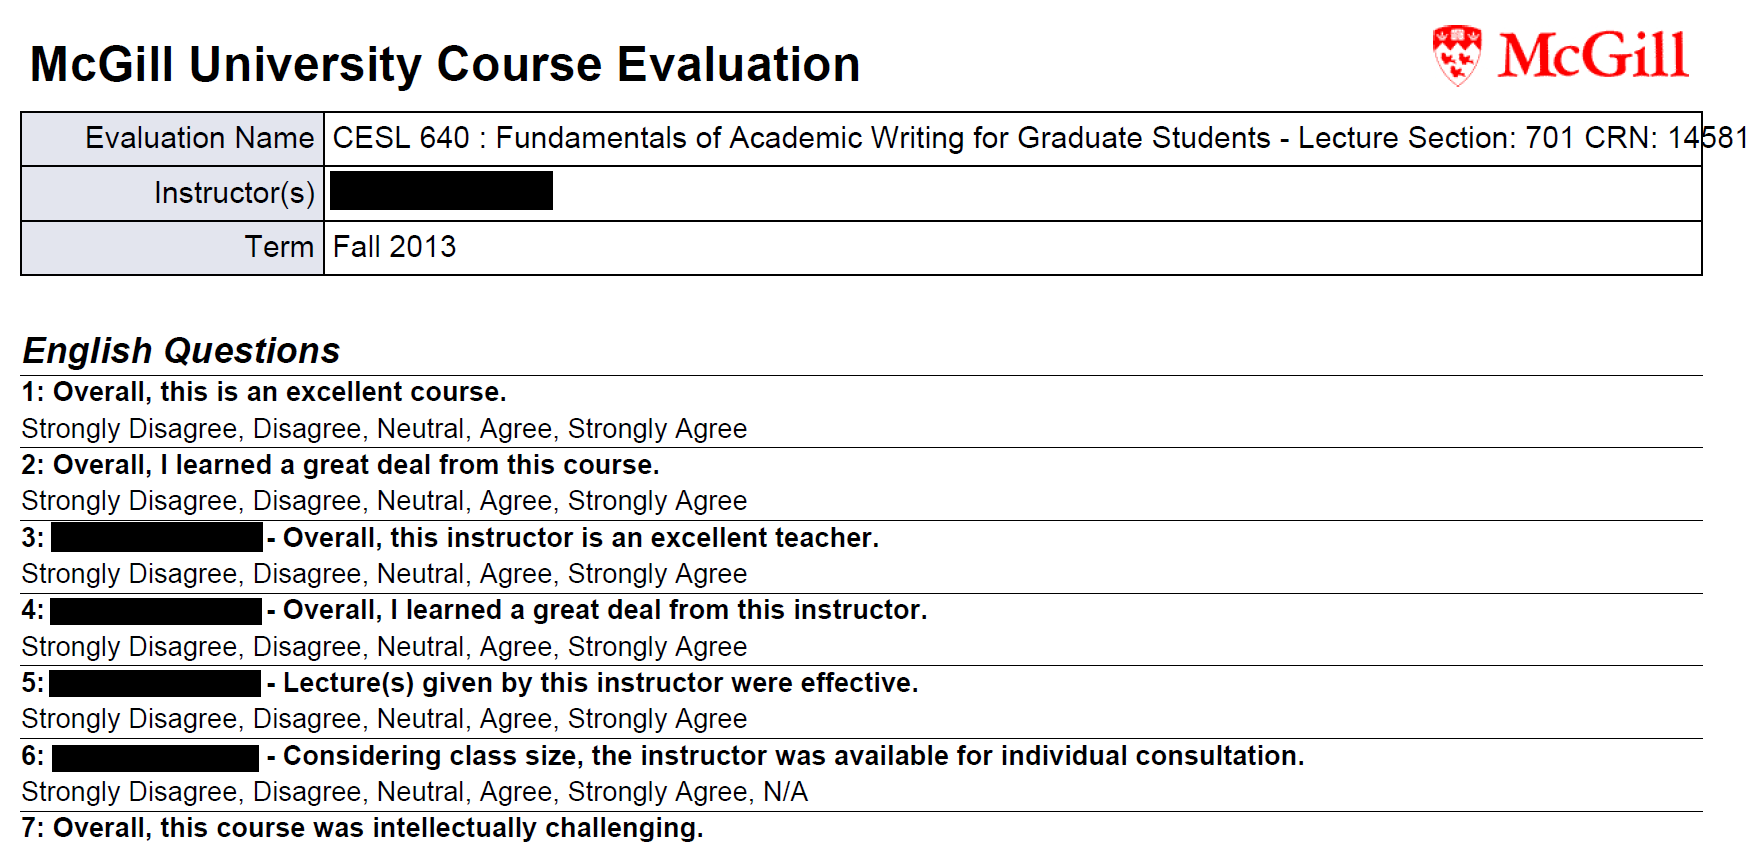 Sample printable version of evaluation